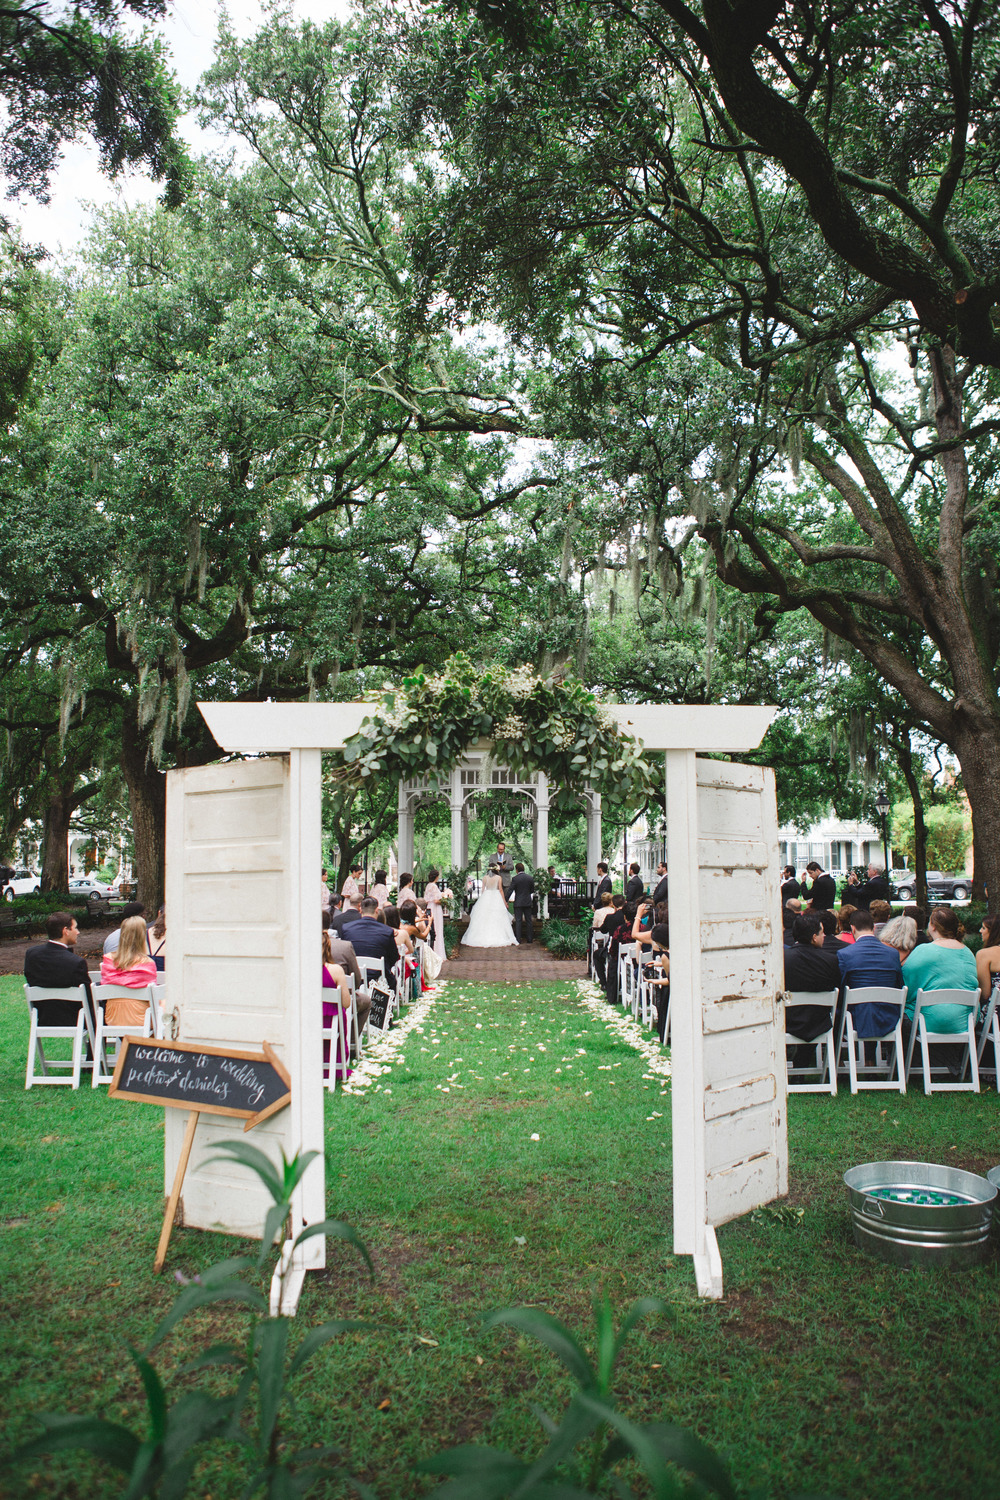 daniela-and-pedro-wedding-izzy-hudgins-photography-a-to-zinnias-whitfield-square-charles-h-morris-center-wedding-ivoyy-and-beau-bridal-boutique-dorie-hayley-paige-savannah-wedding-planner-savannah-bridal-boutique-savannah-weddings-25.jpg